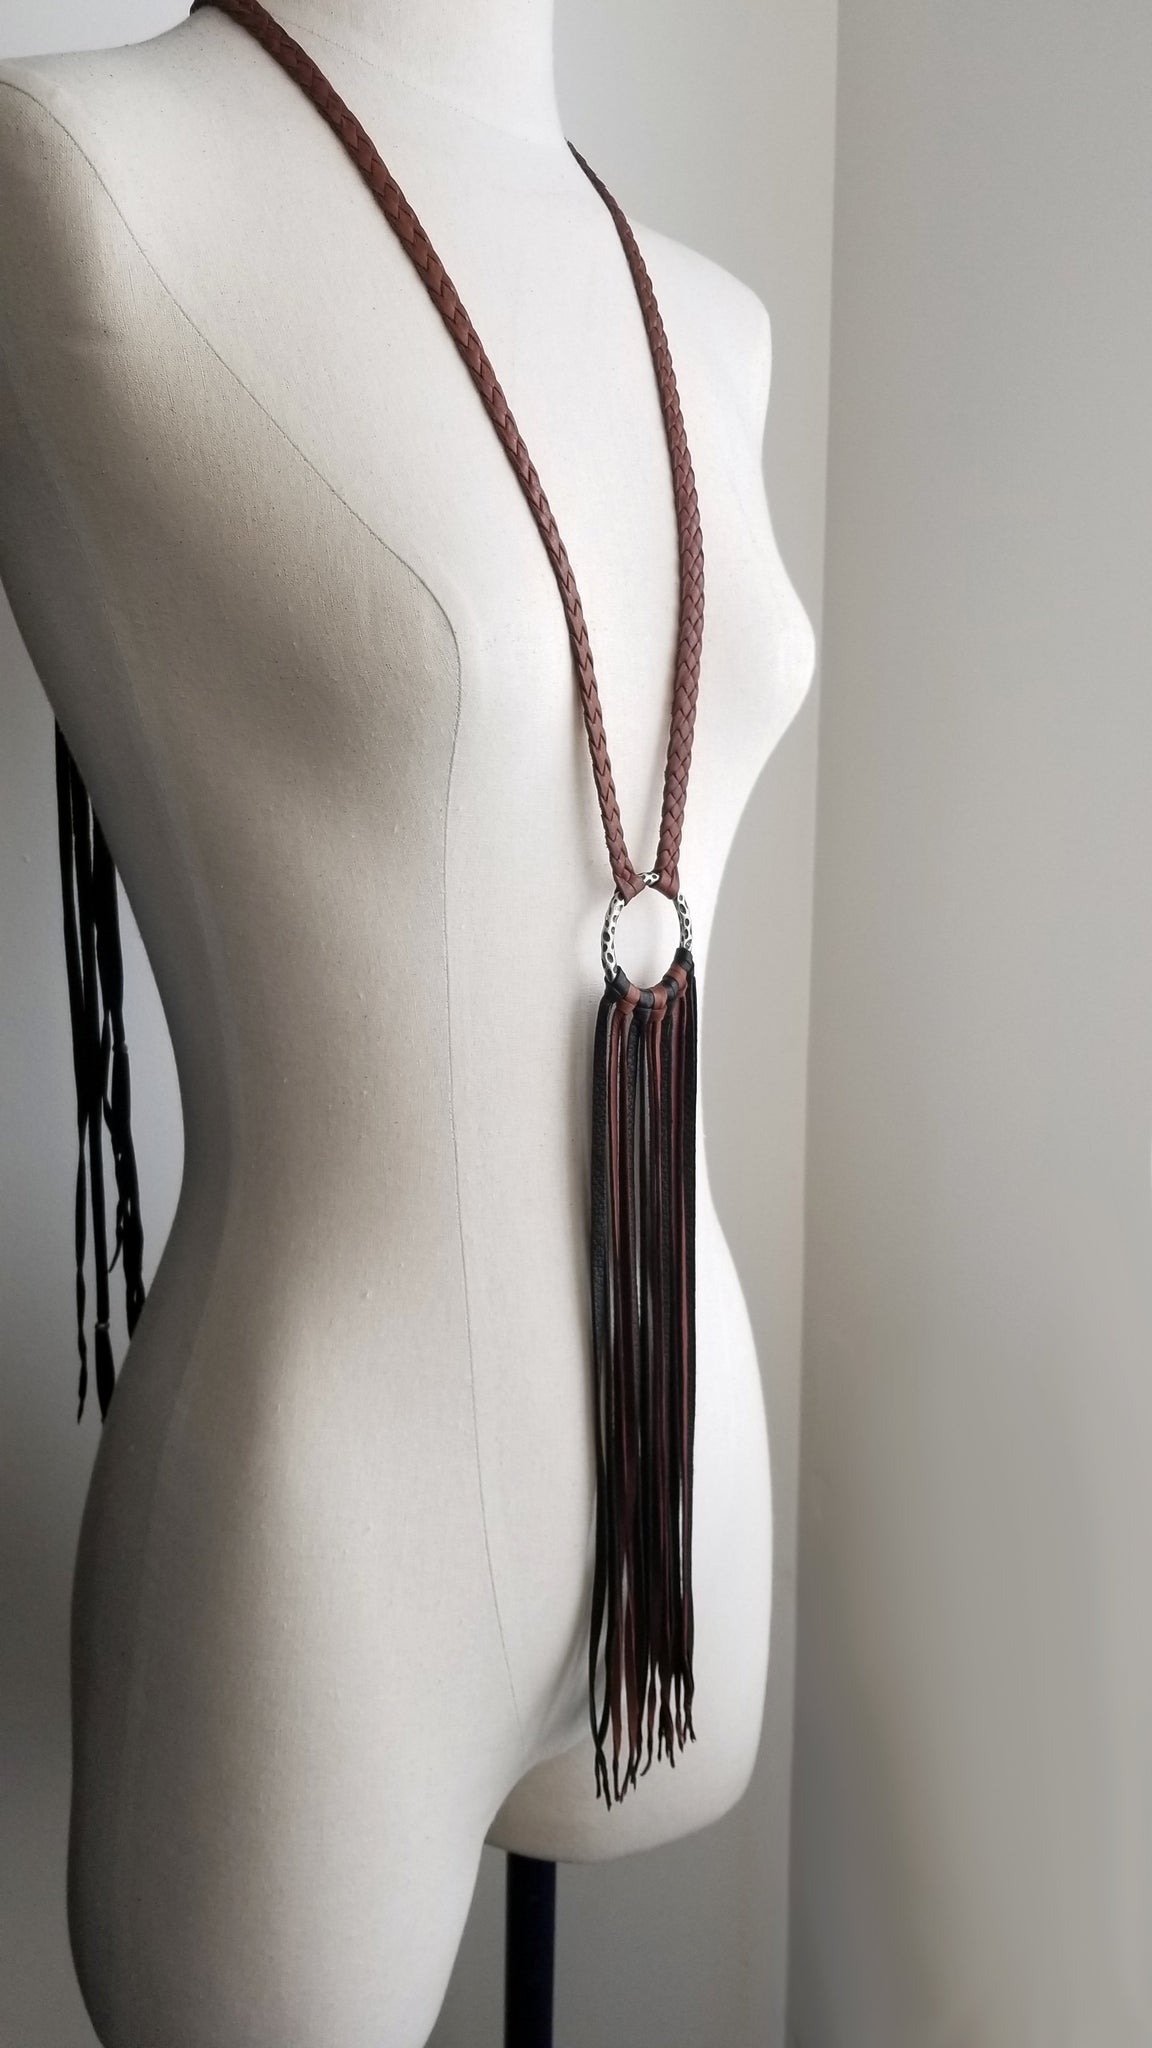 Aisha leather statement necklace - mahogany and black deerskin leather